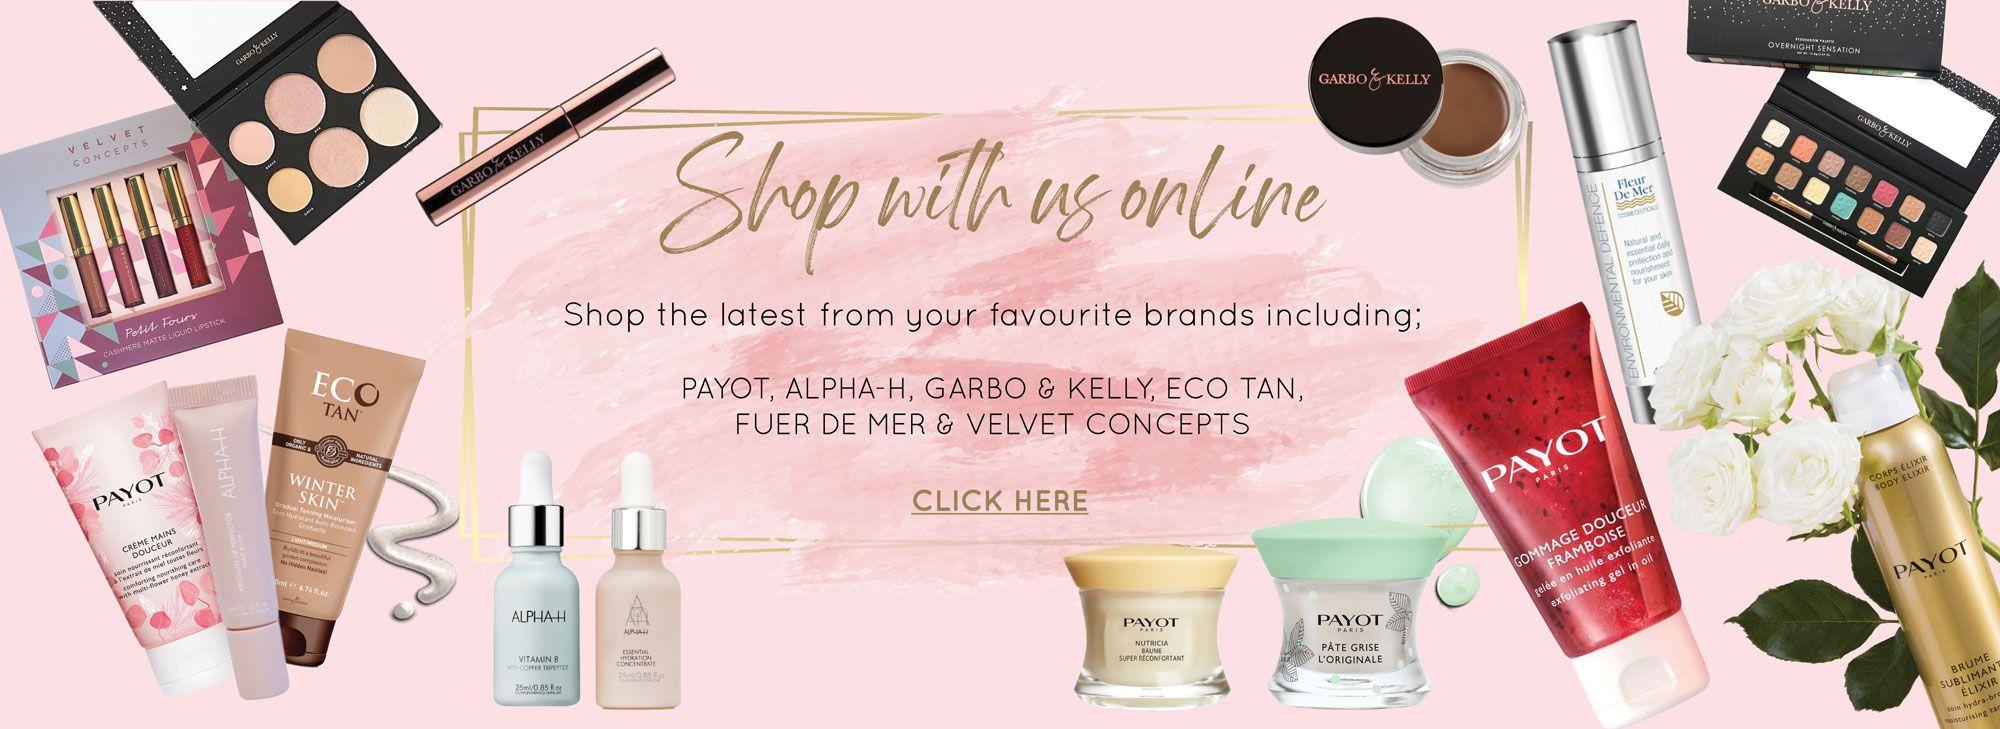 Shop with us online for the latest from your favorite brands including payot, alpha-h, garbo & kelly, eco tan, fuer de mer and velvet concepts